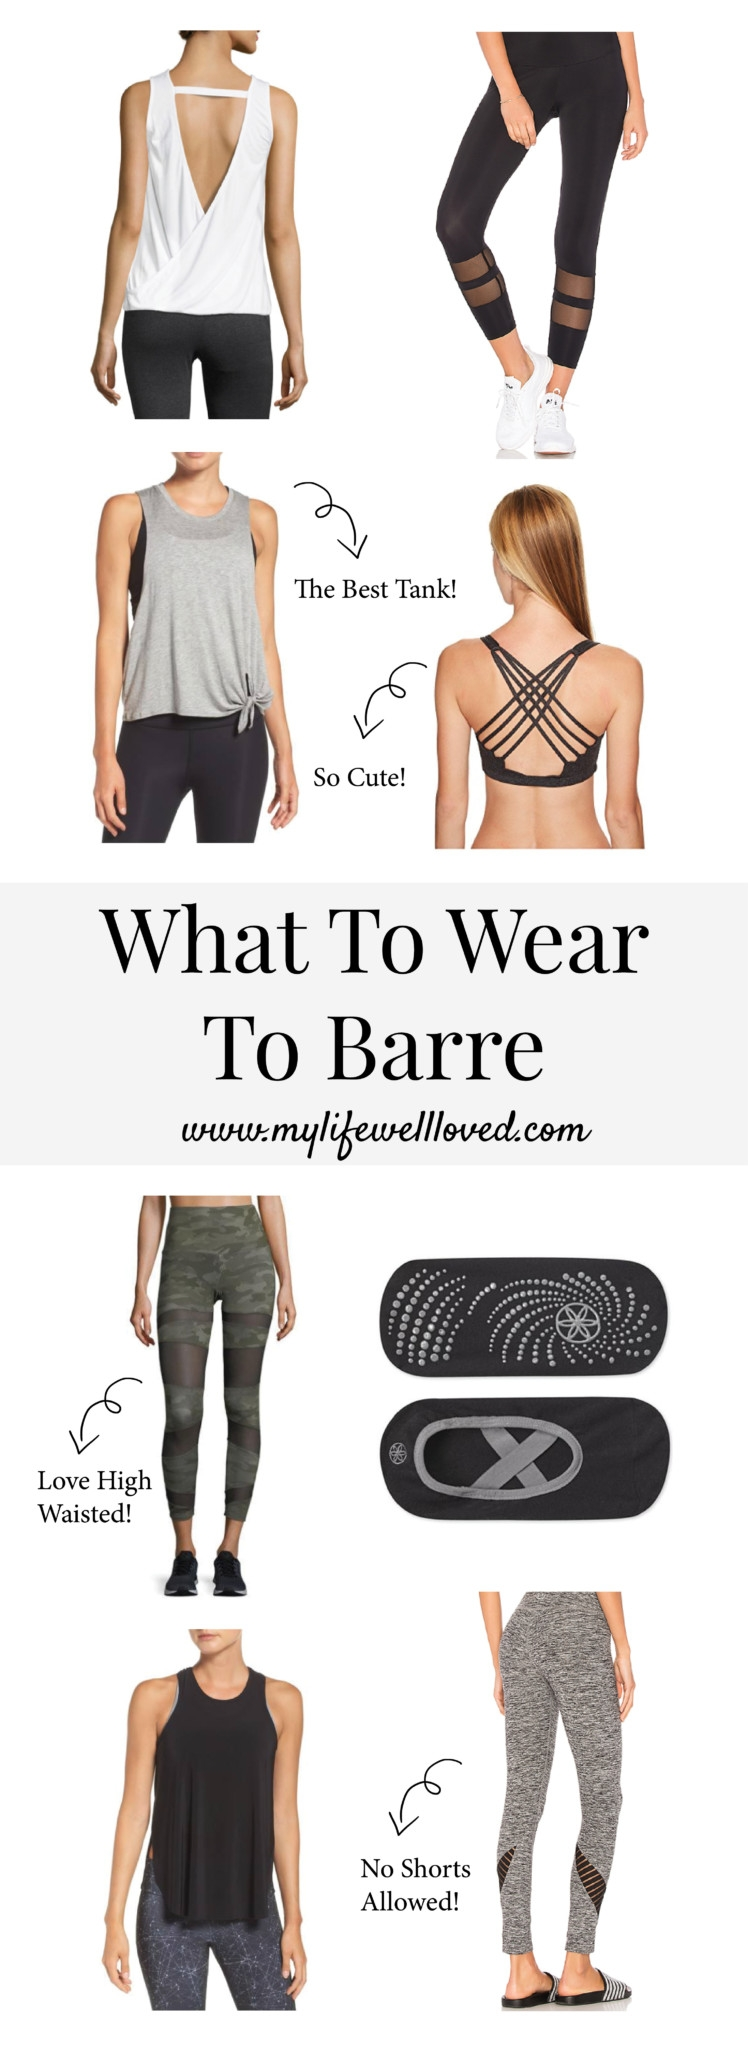 What to wear to barre from Alabama Pure Barre teacher Heather of MyLifeWellLoved.com // Pure Barre - What to Wear to Barre Class by popular Alabama fitness blogger My Life Well Loved